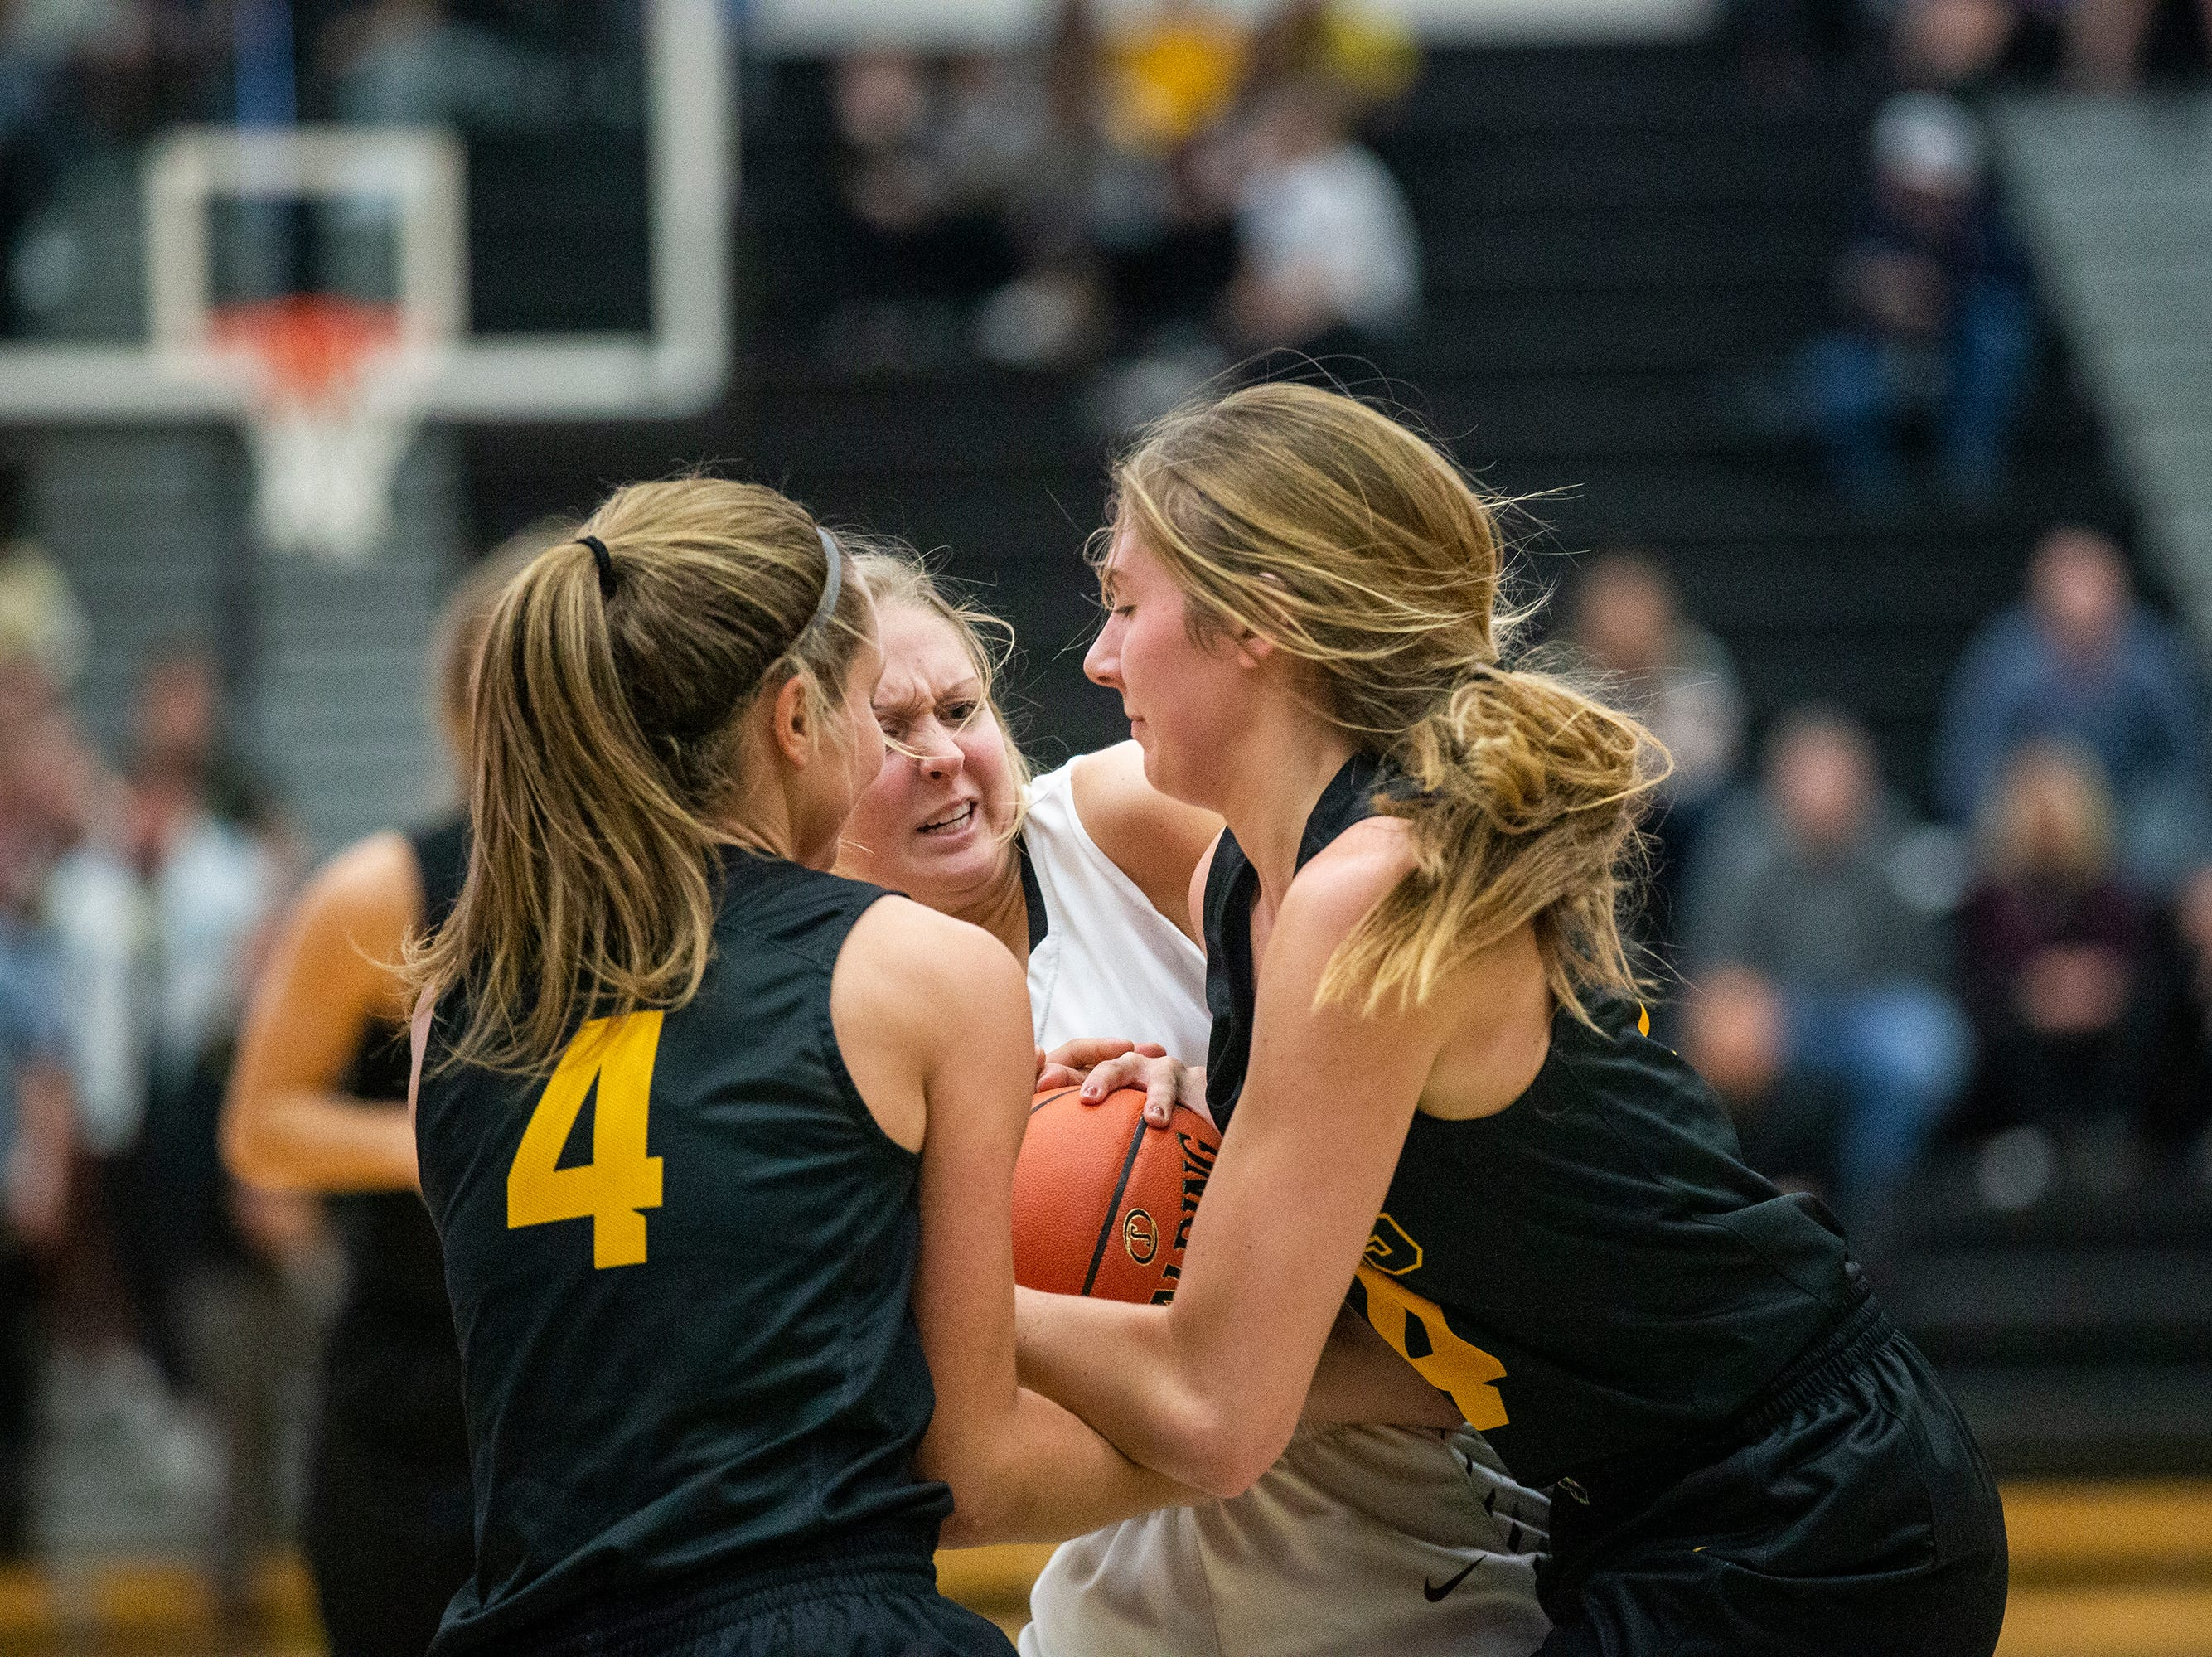 SEP's Jaycie Elliott and Kadence Williams and Centennial's Lily King fight for a jump ball during the Southeast Polk vs. Ankeny Centennial girls' basketball game on Tuesday, Nov. 27, 2018, at Ankeny Centennial High School.